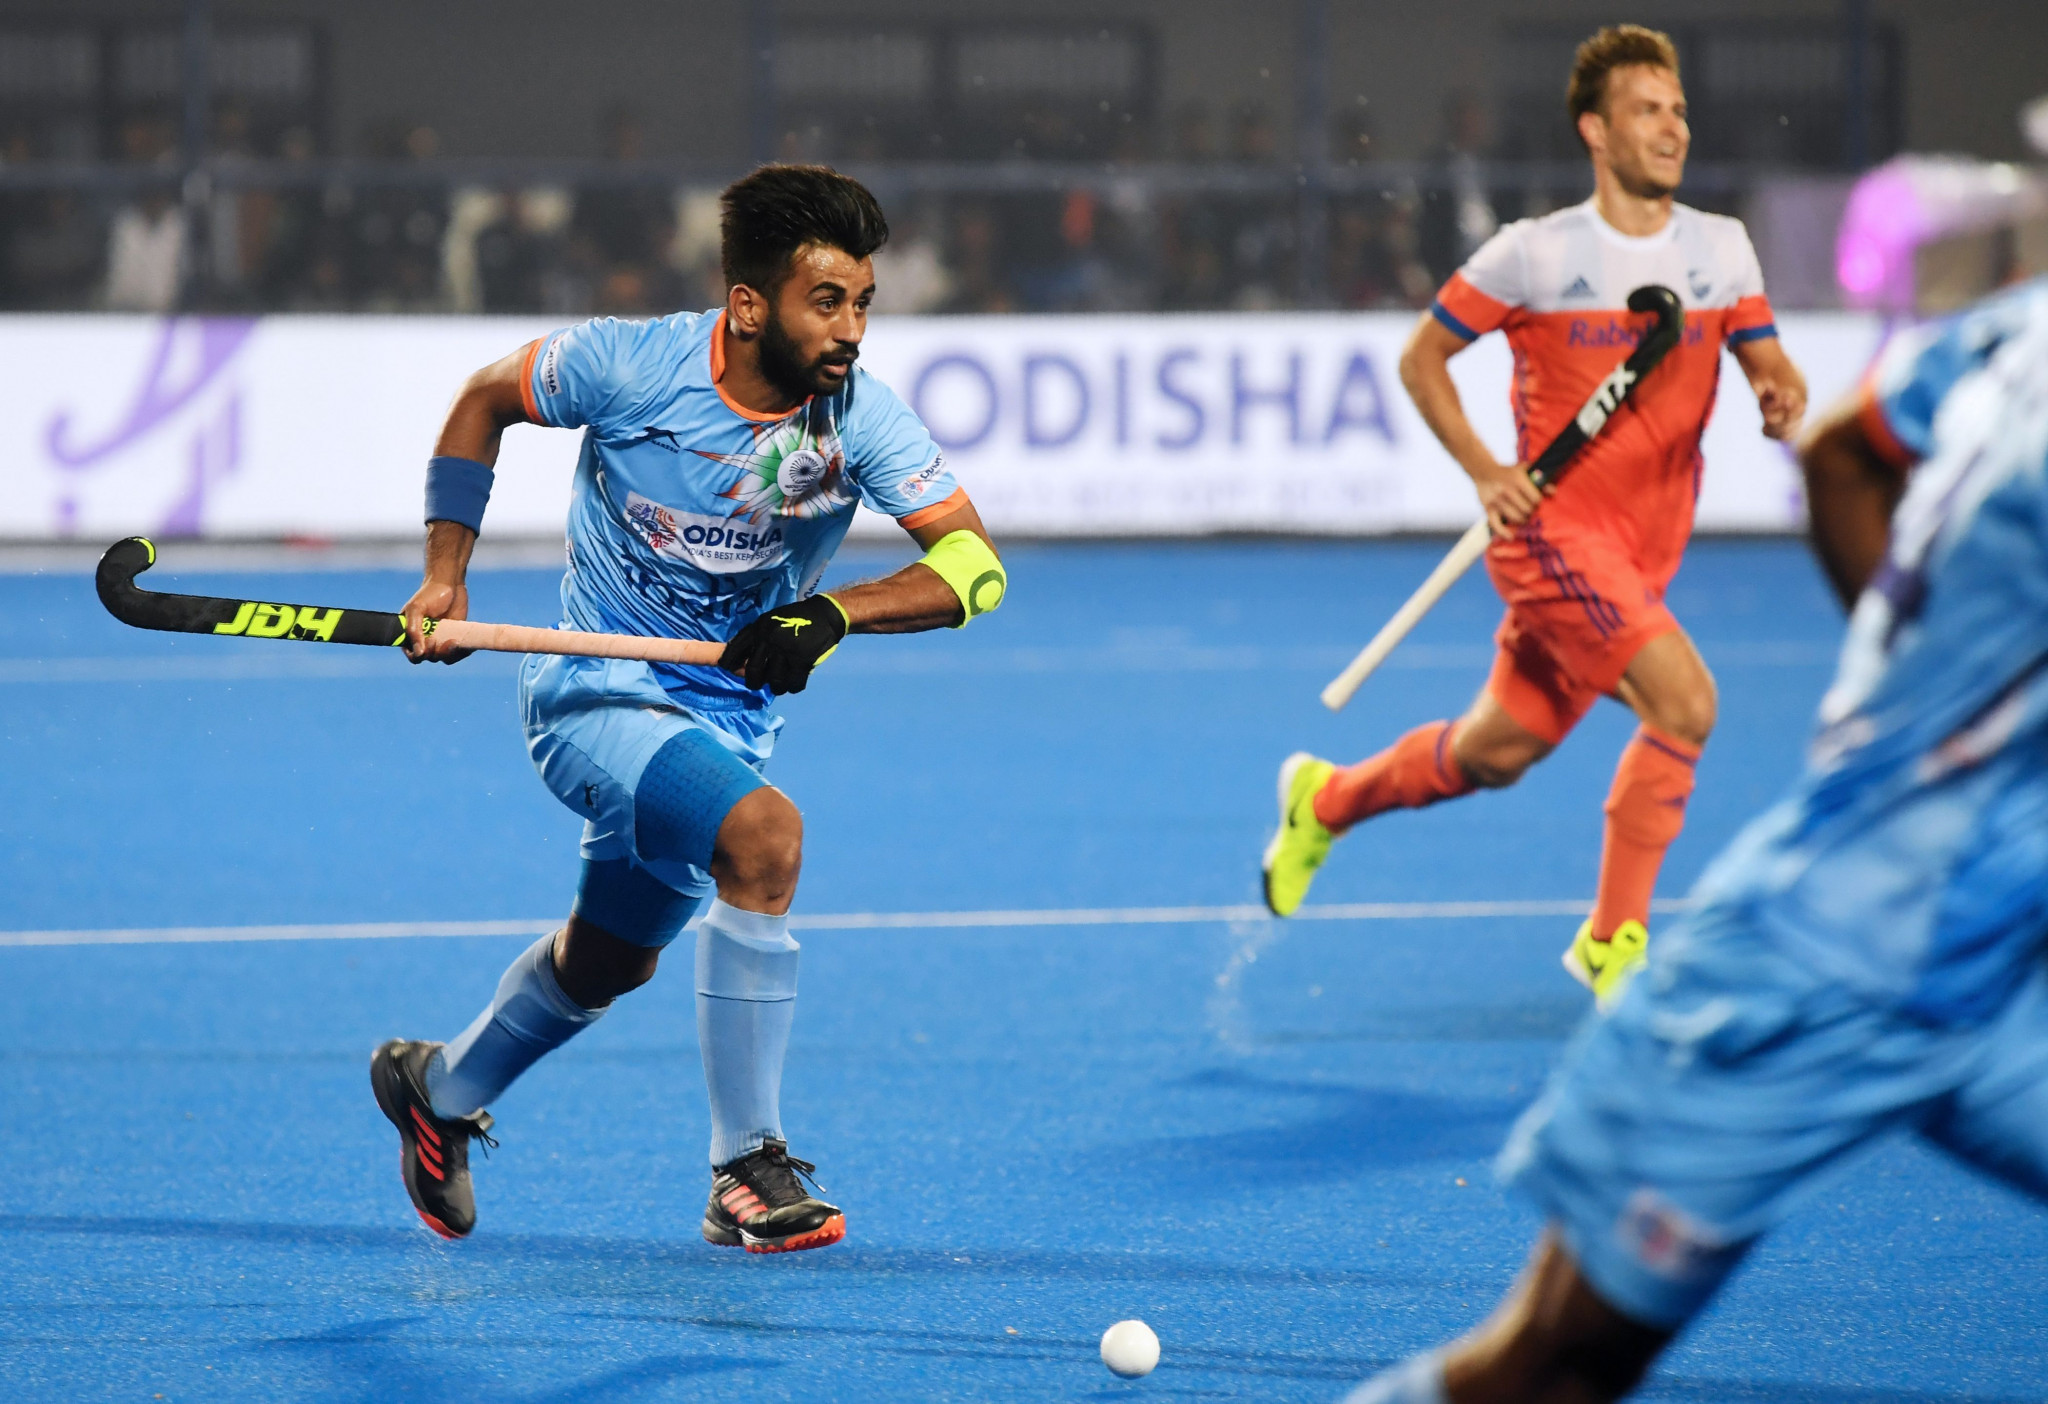 Manpreet Singh will be hoping to steer India to medal success after leading the country into Japan's National Stadium ©Getty Images